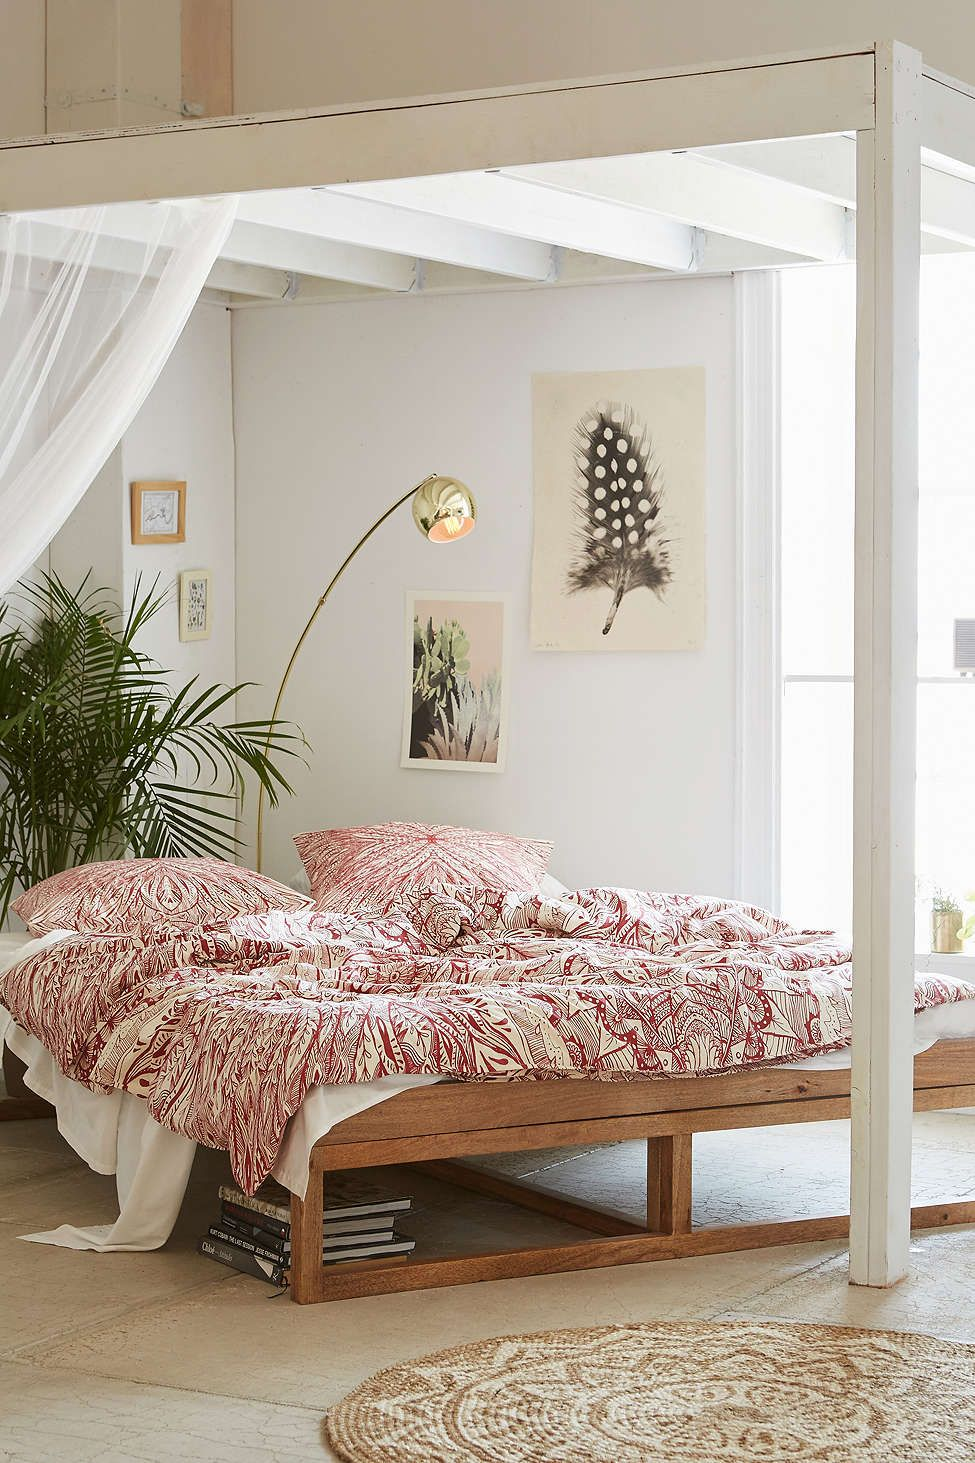 Pin By Mameow Myosotid On Spaces Home Diy Platform Bed